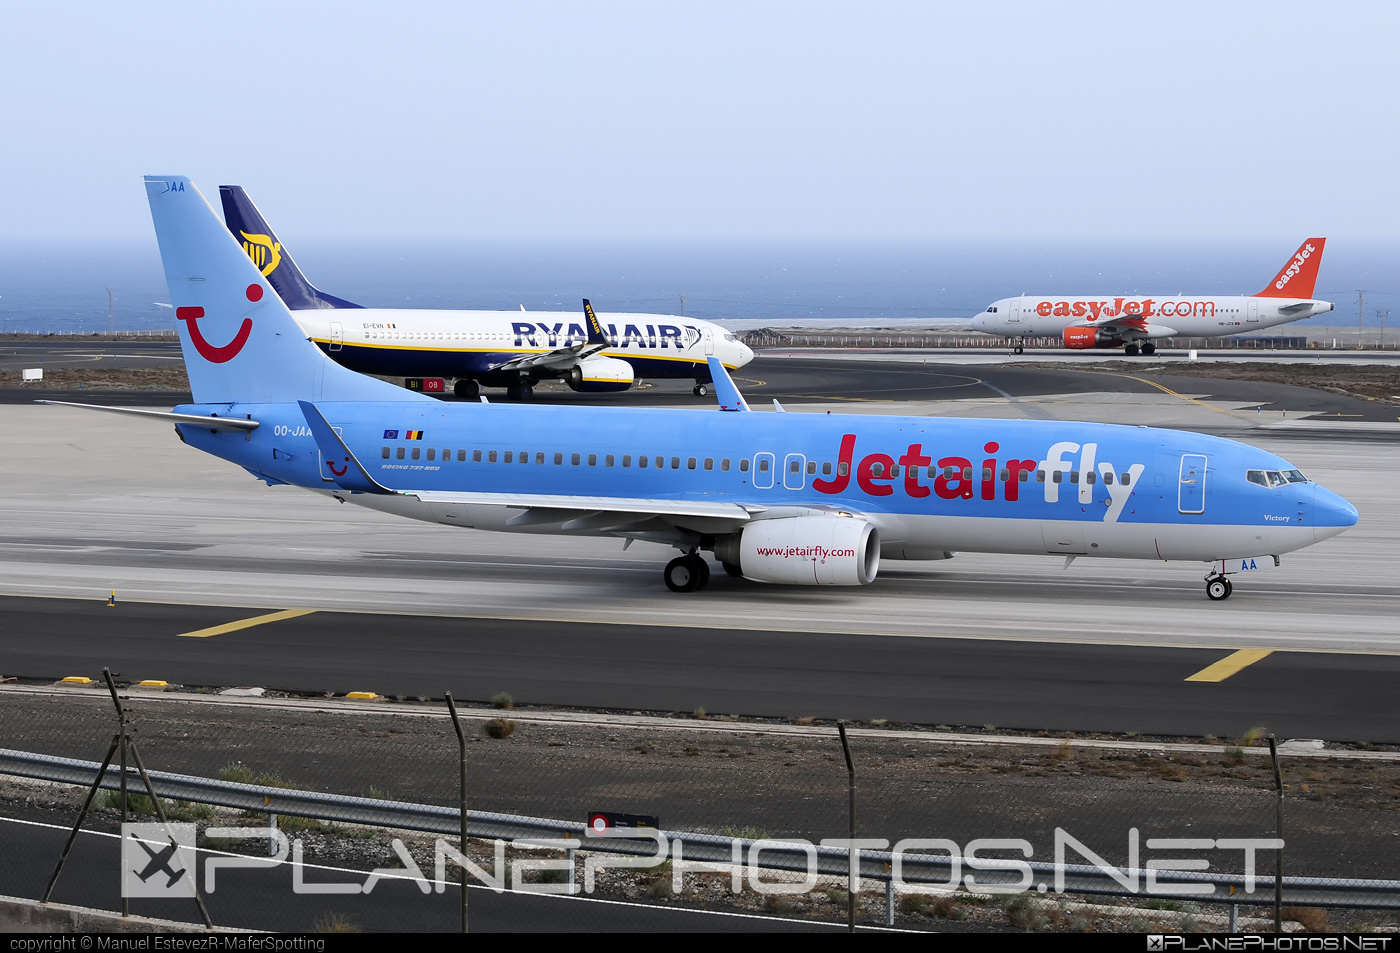 Boeing 737-800 - OO-JAA operated by Jetairfly #b737 #b737nextgen #b737ng #boeing #boeing737 #jetairfly